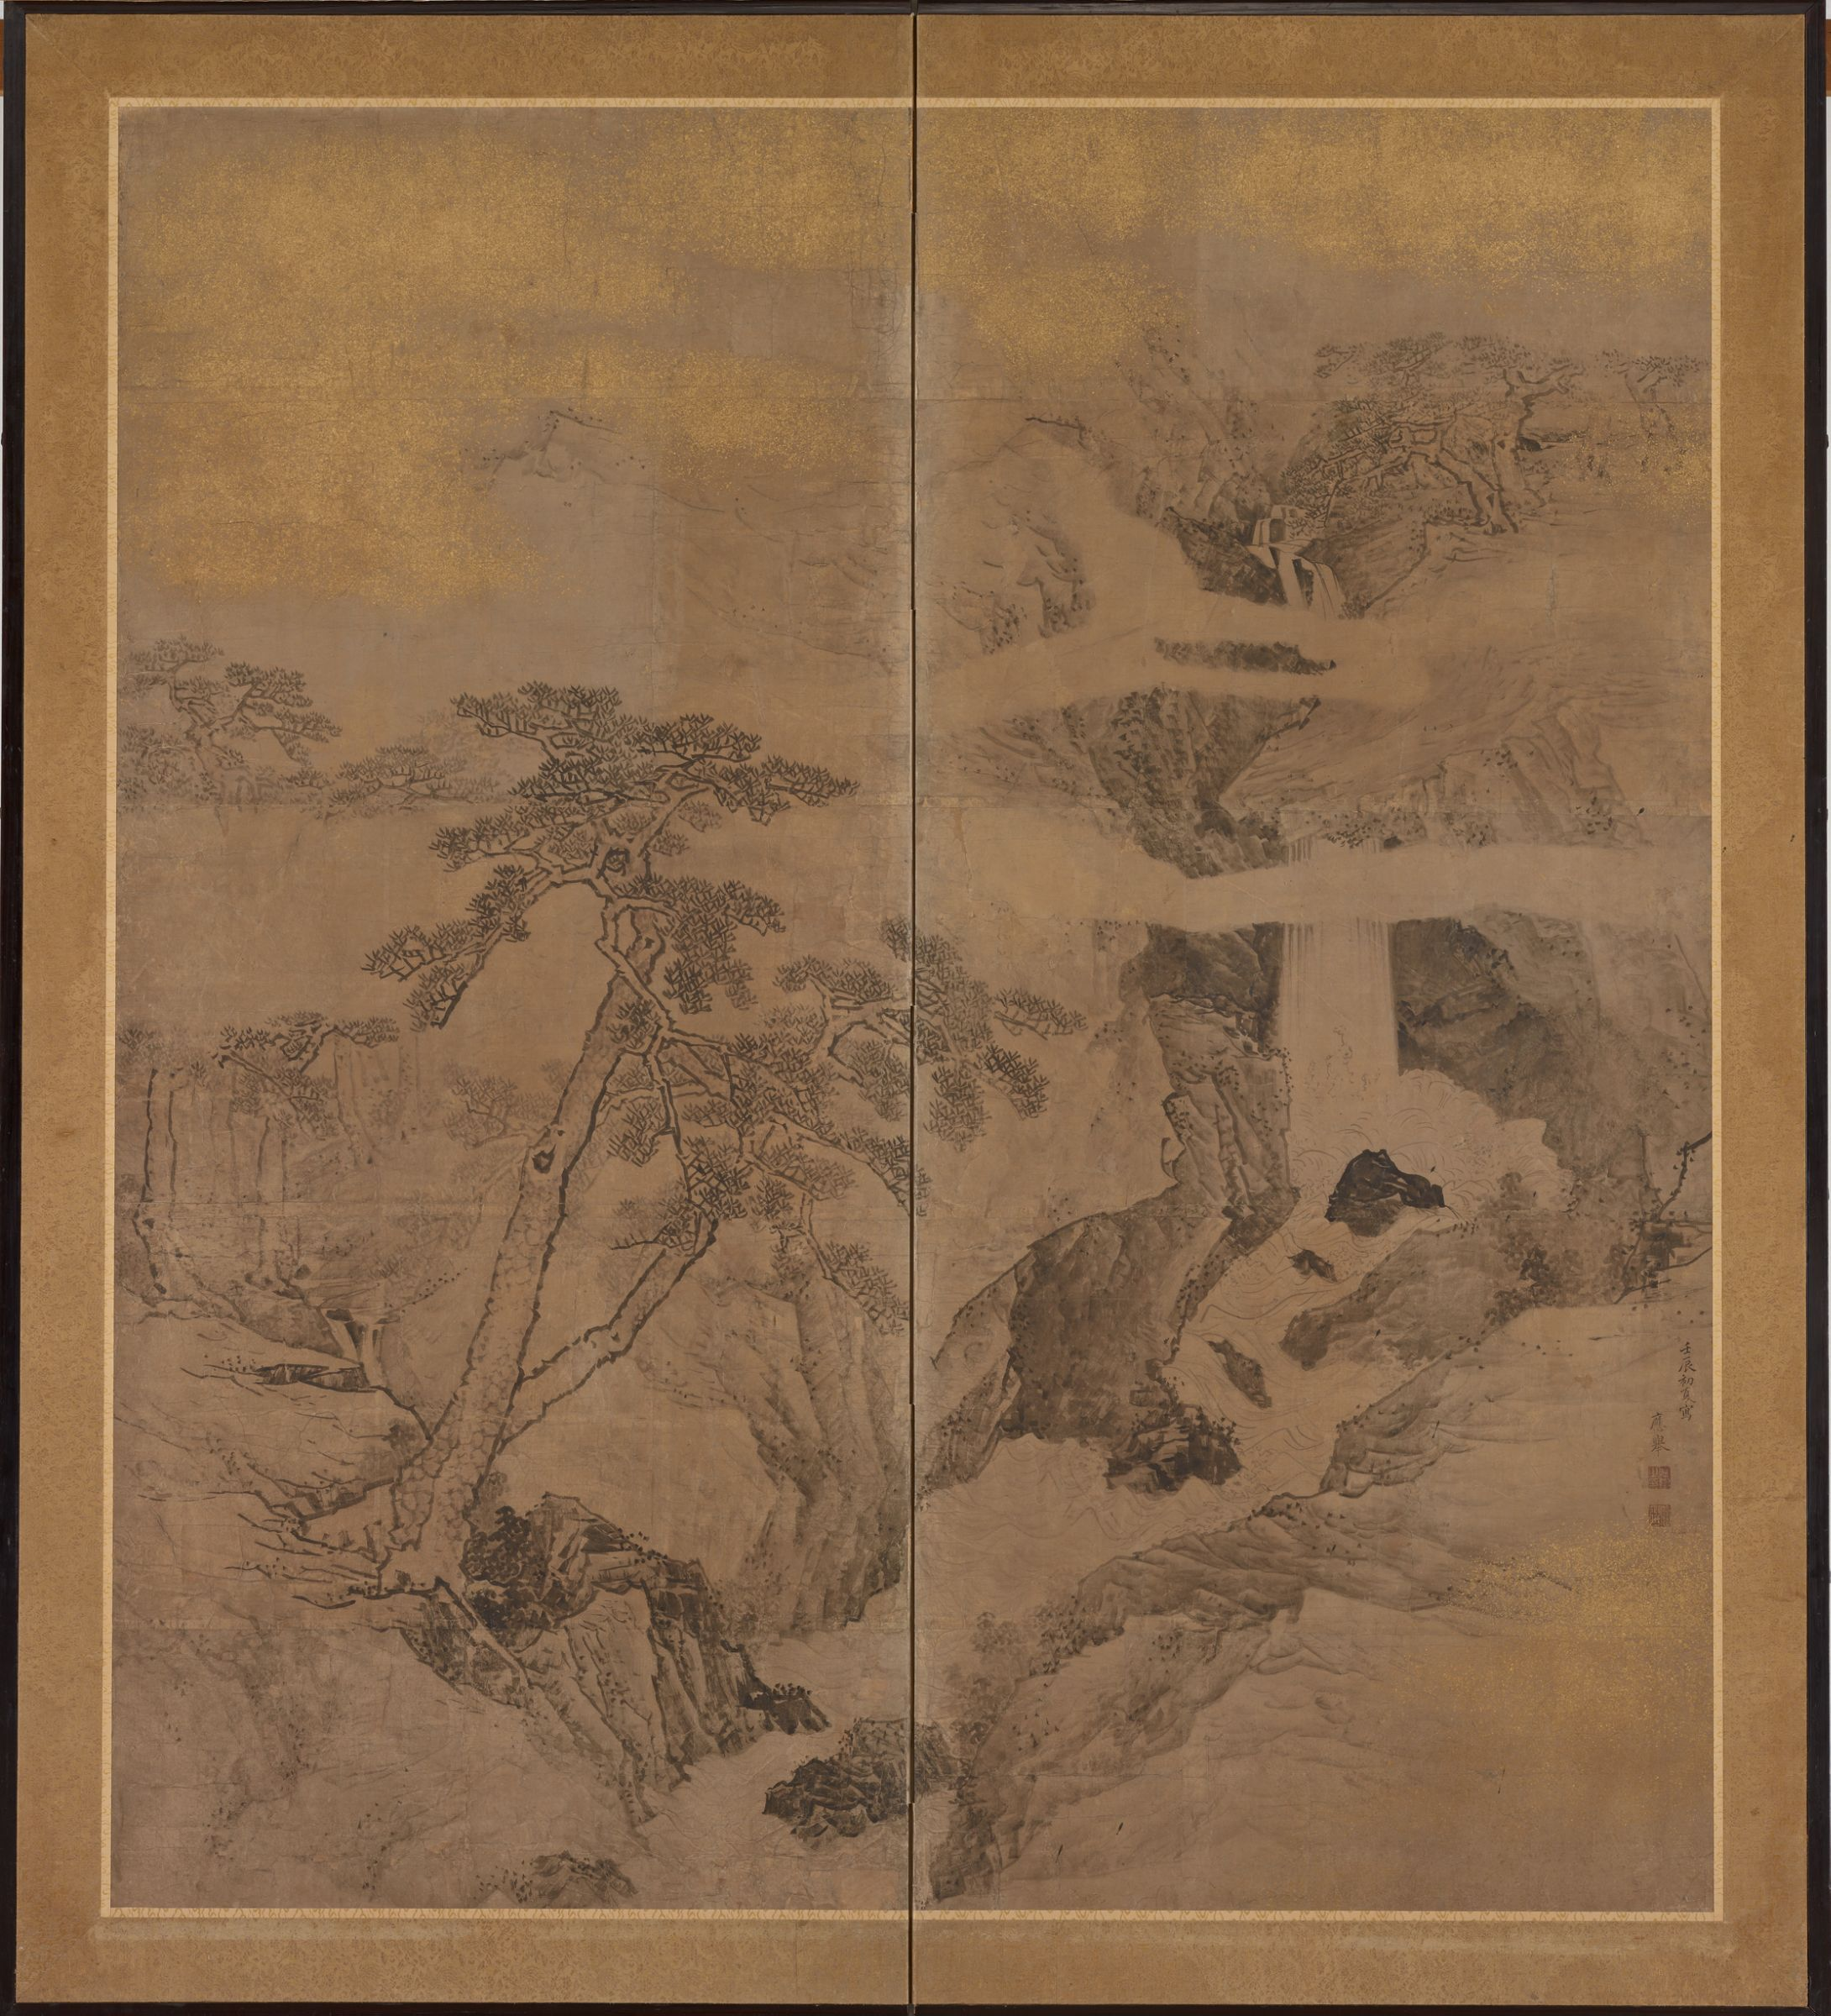 Maruyama Ōkyo, Waterfall and Pines, 1772, summer. Screen painting. Promised gift of Robert S. and Betsy G. Feinberg.